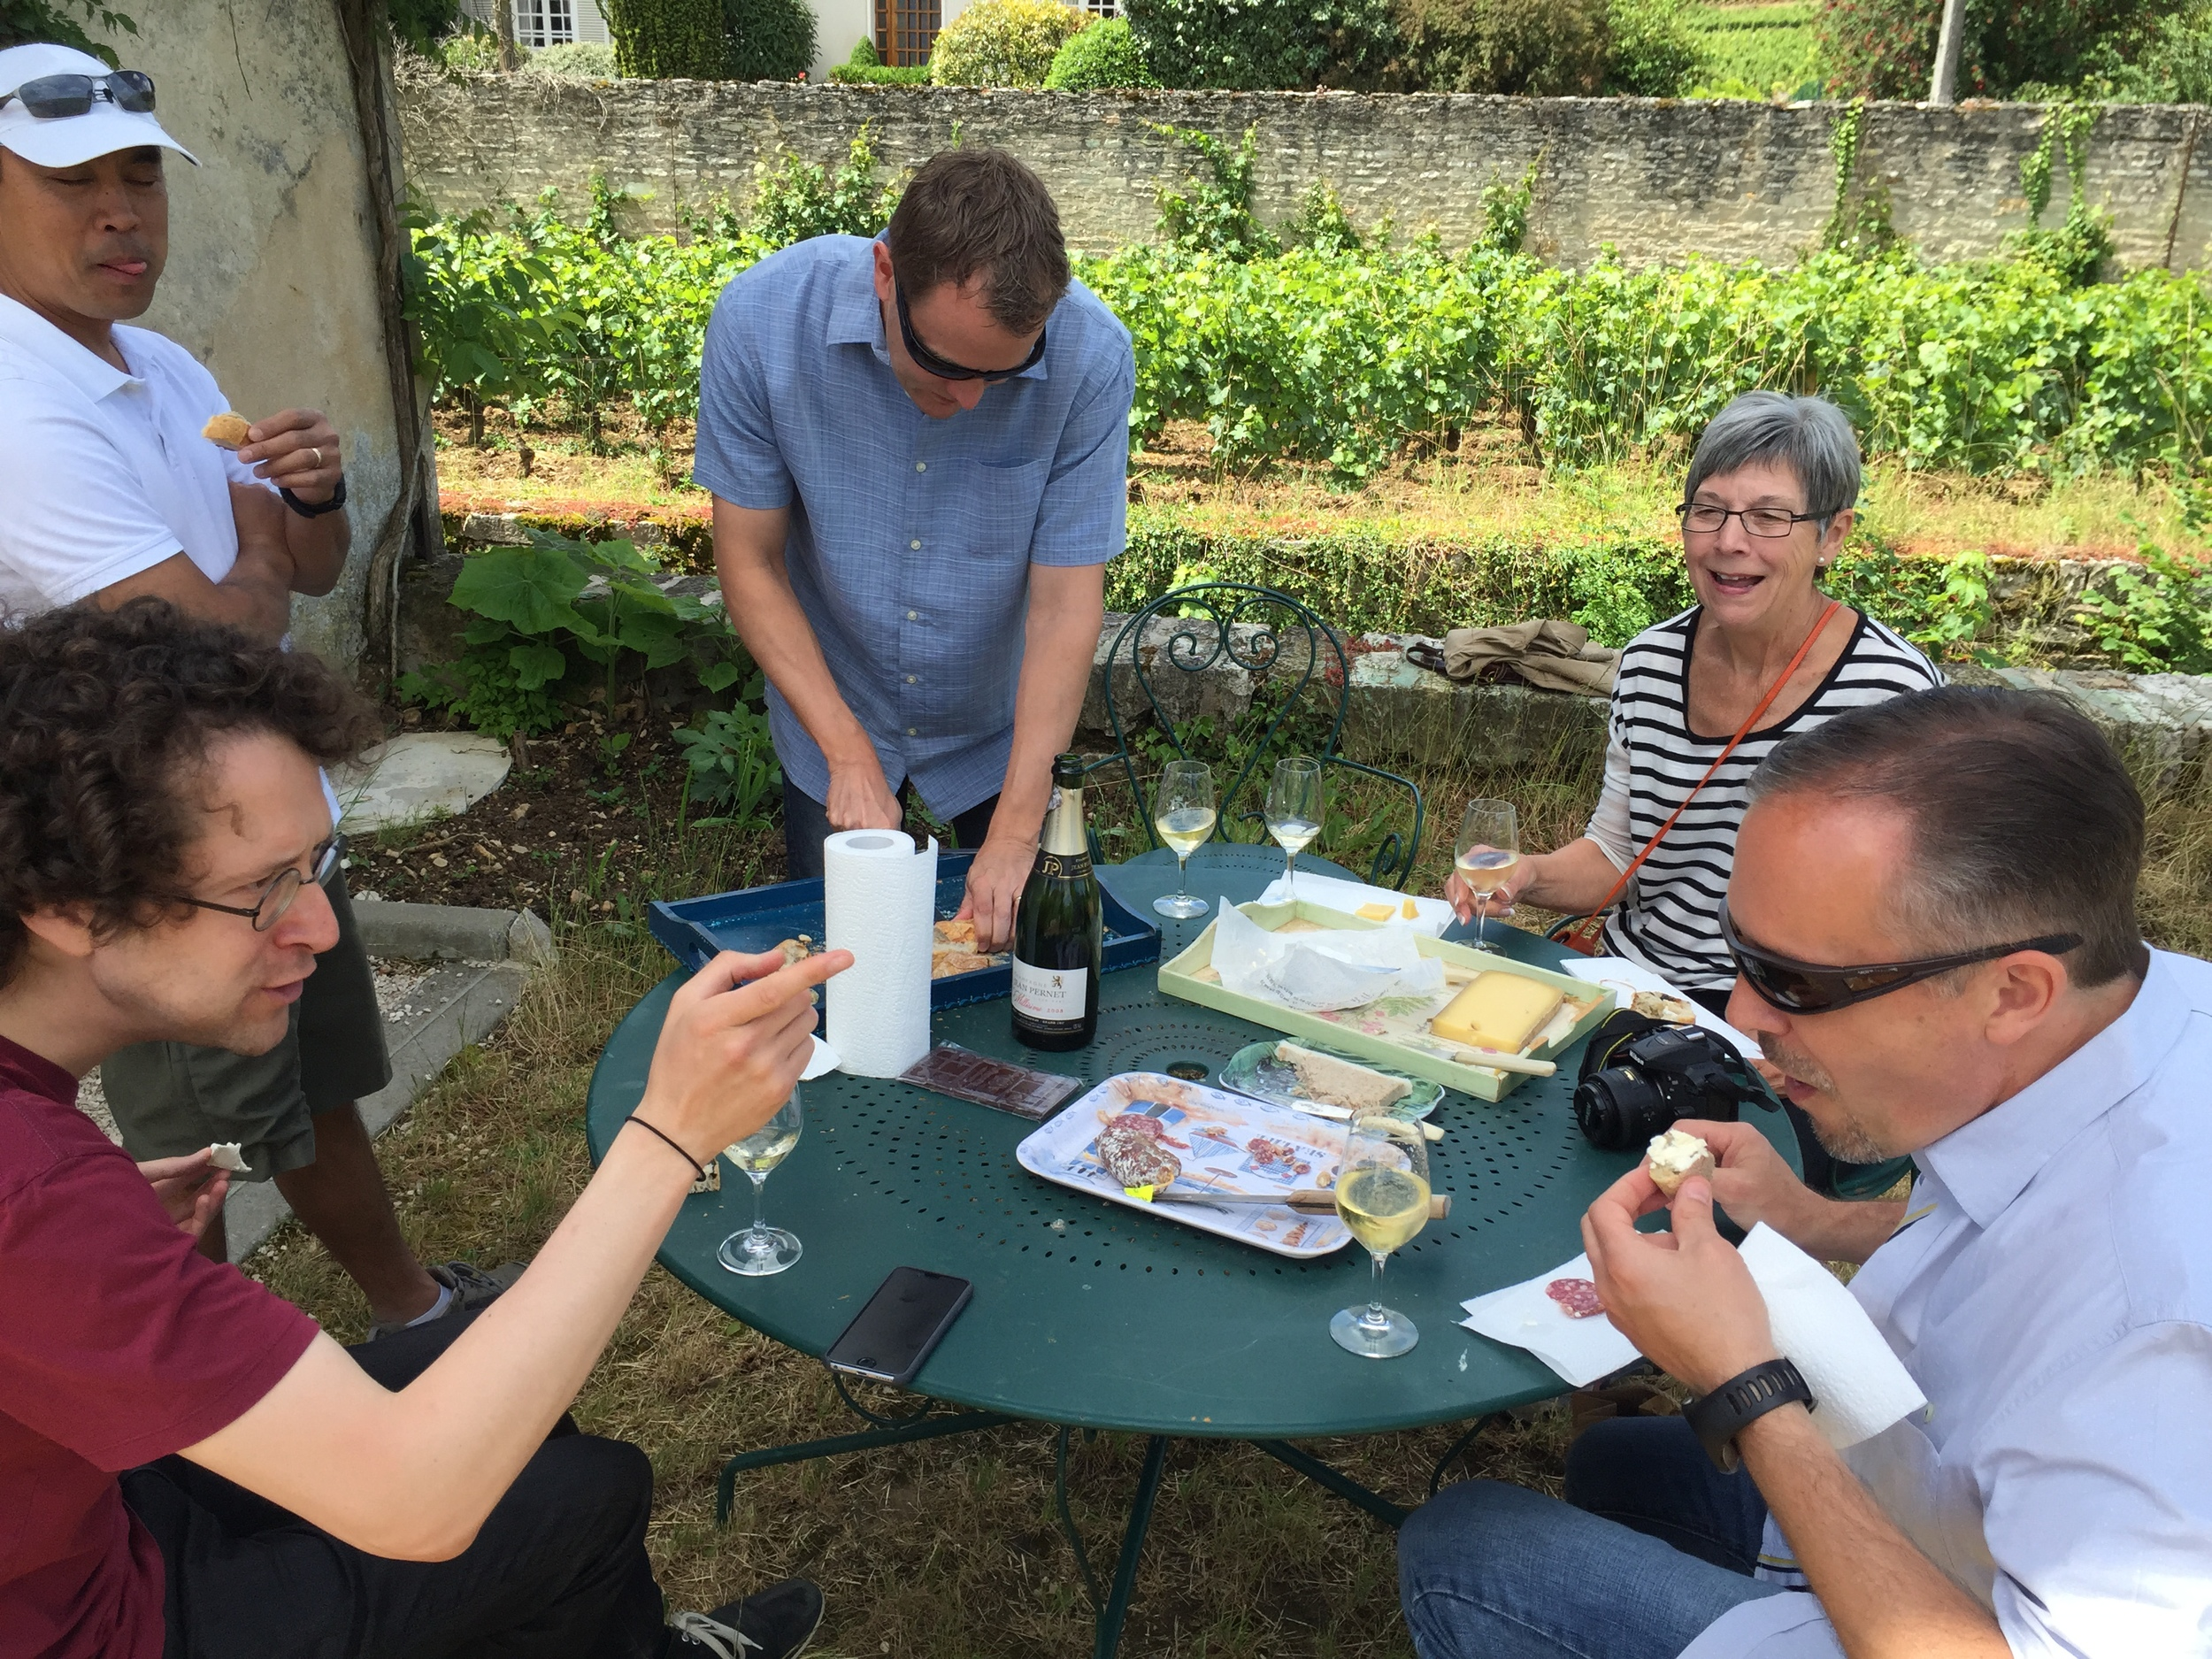 Our farewell casse-croute in the Clos du Colombier